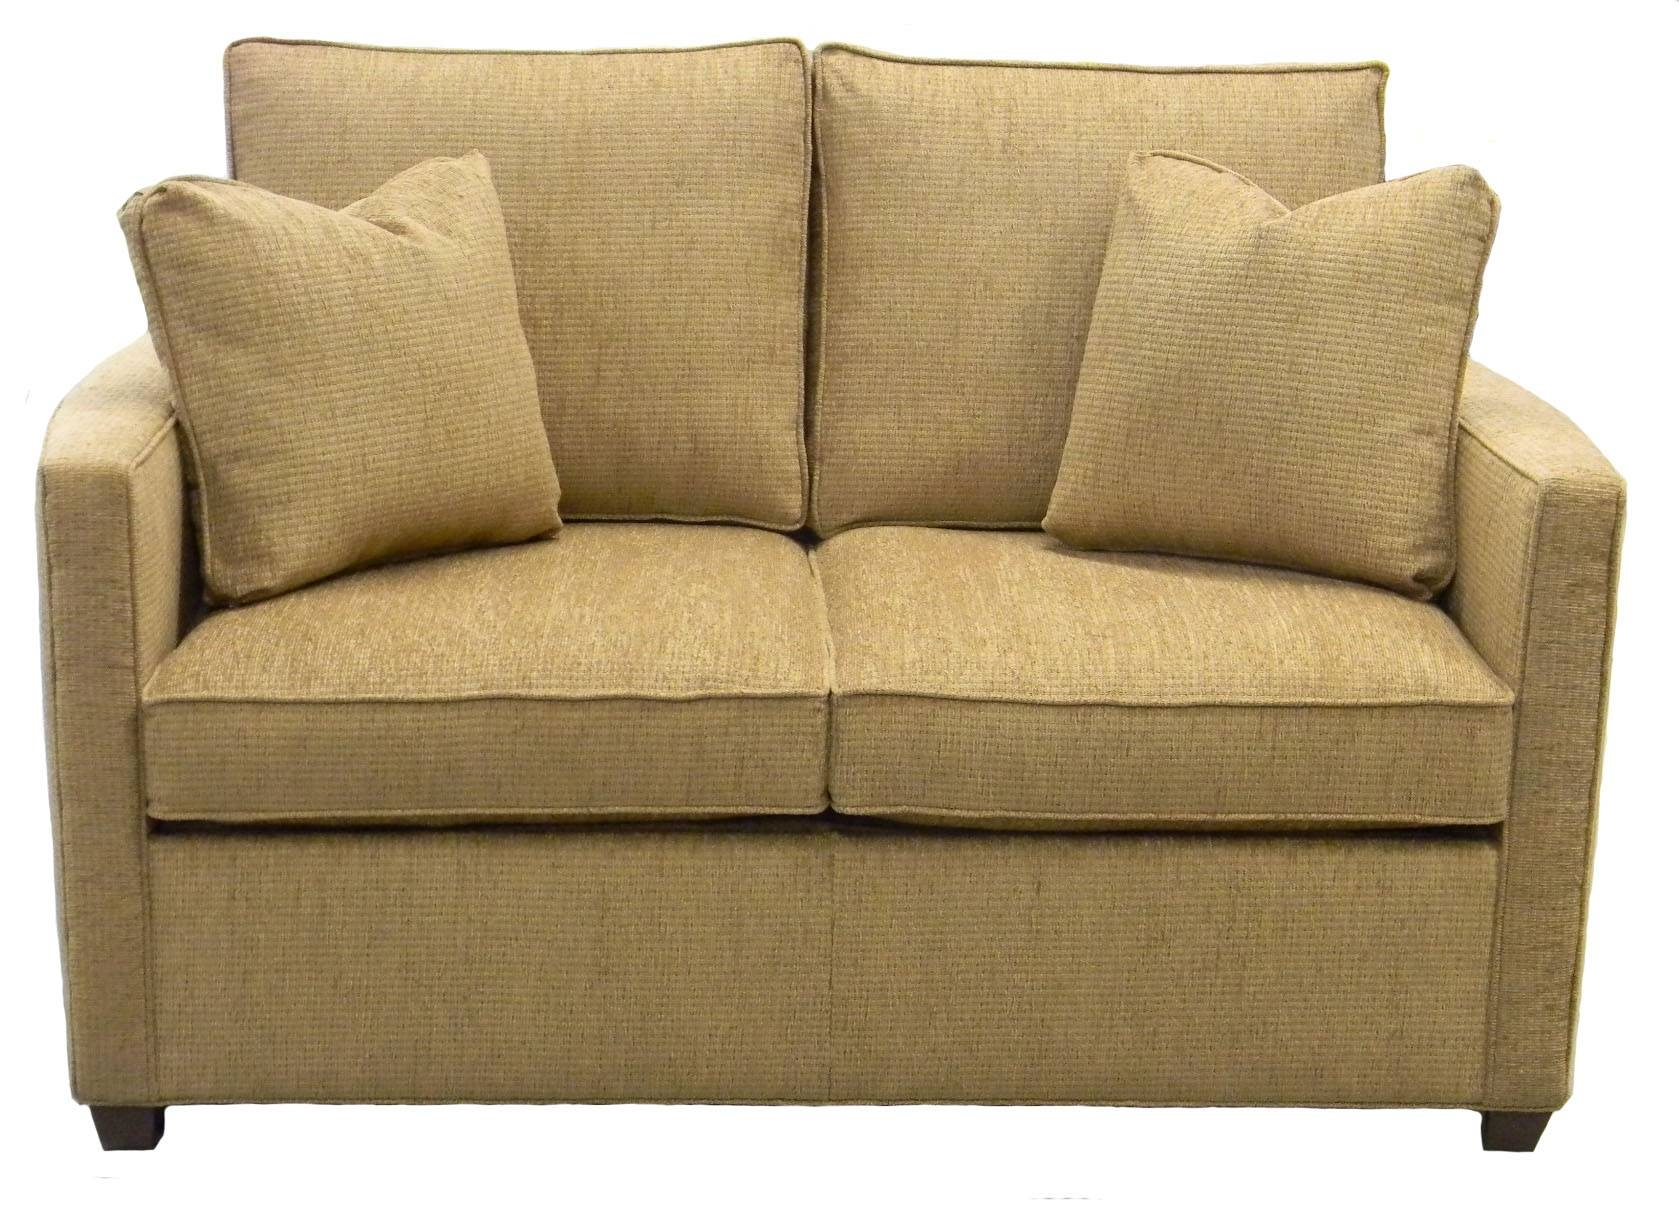 Sofas Center : Twin Sleeper Sofa Chair Shocking Picture intended for Twin Sofa Chairs (Image 21 of 30)